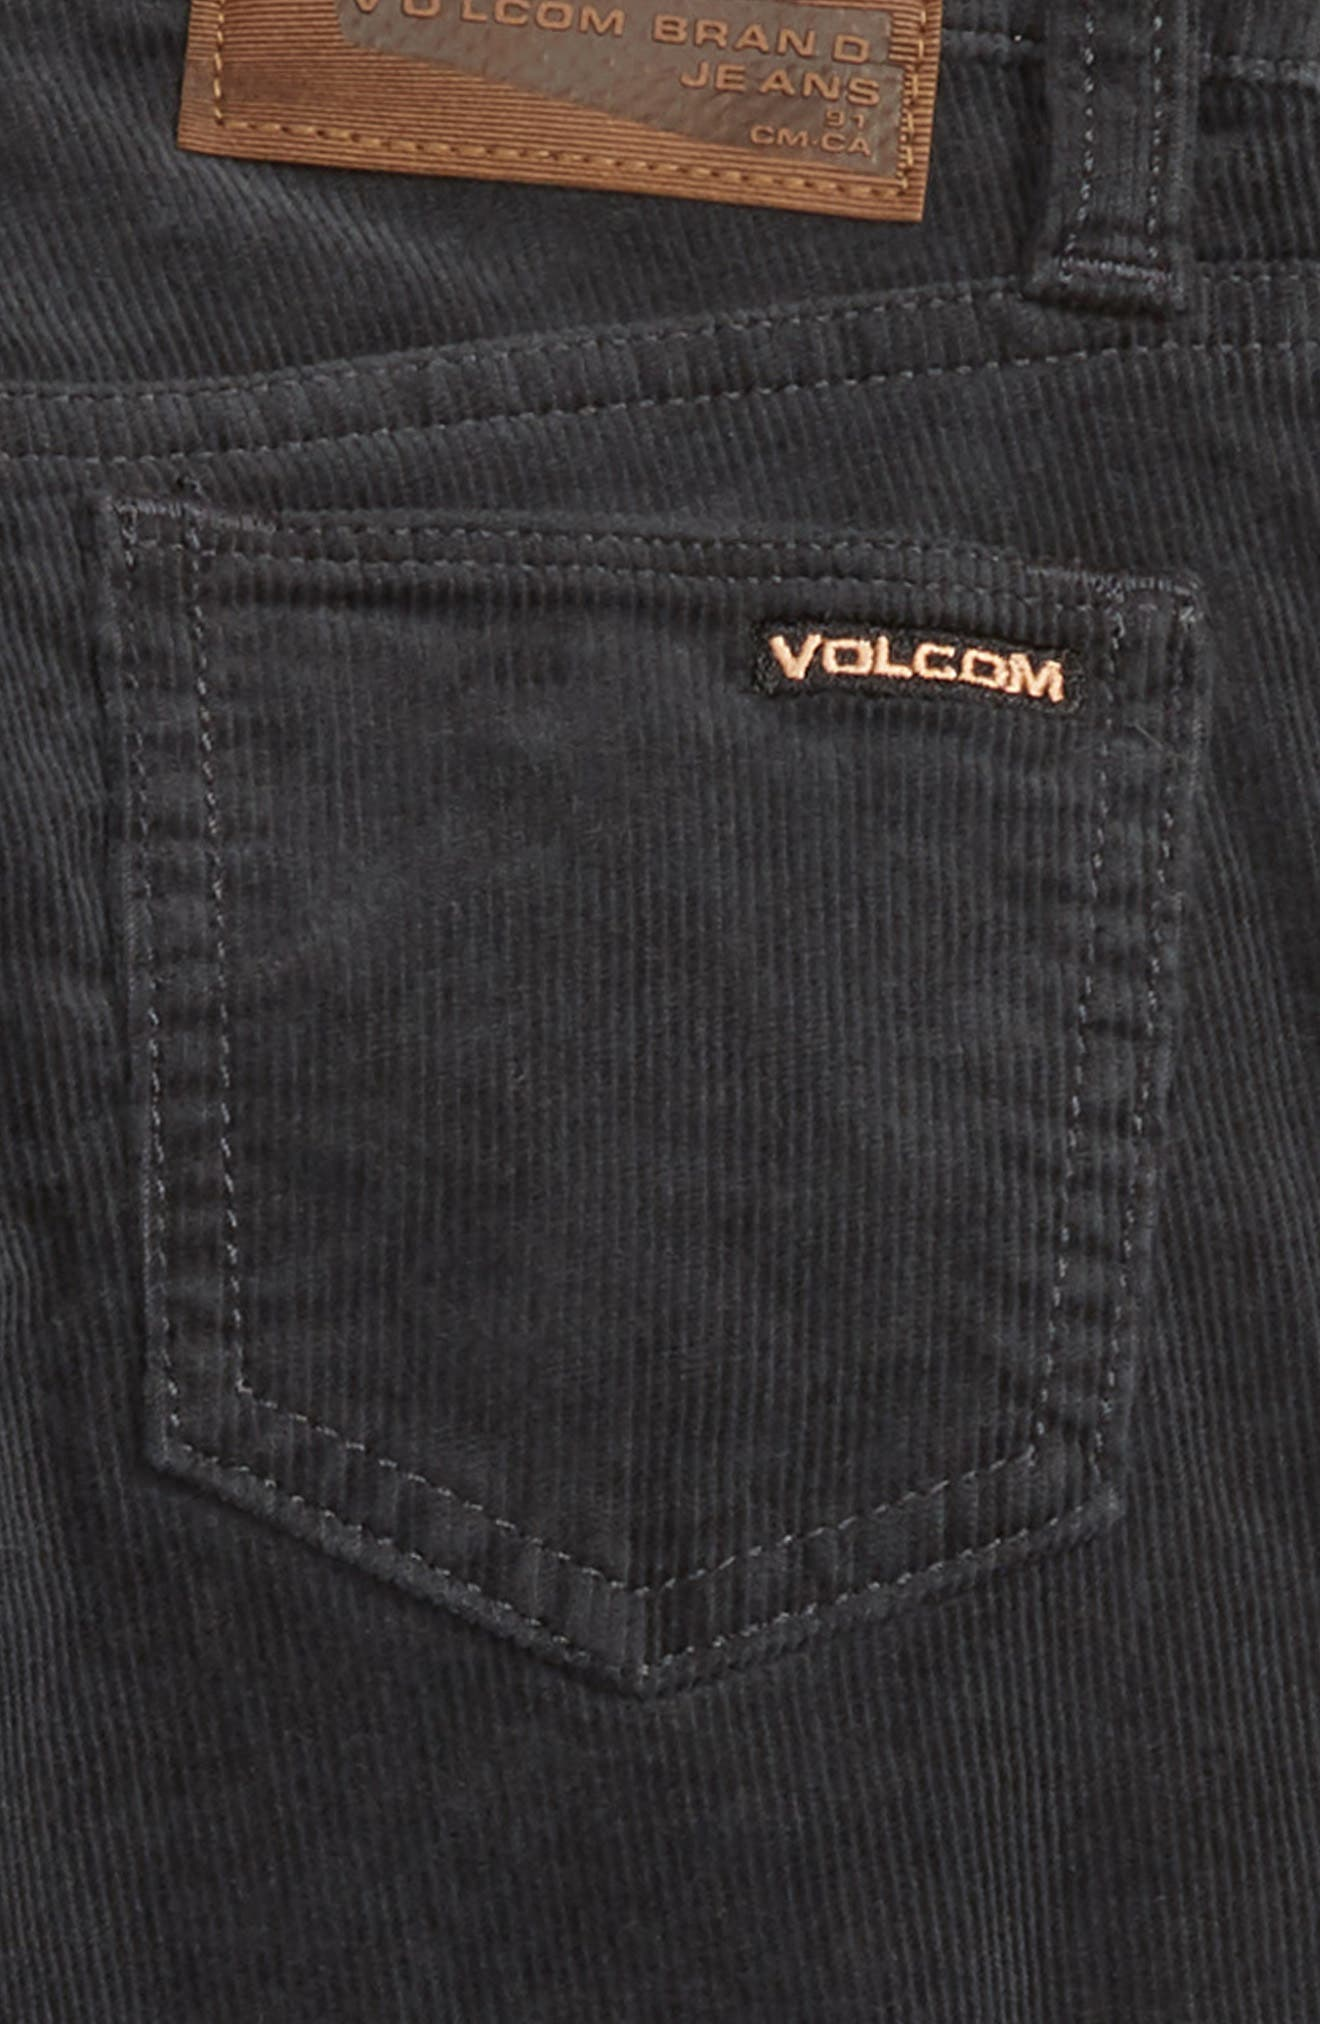 Vorta Slim Fit Corduroy Jeans,                             Alternate thumbnail 3, color,                             STEALTH